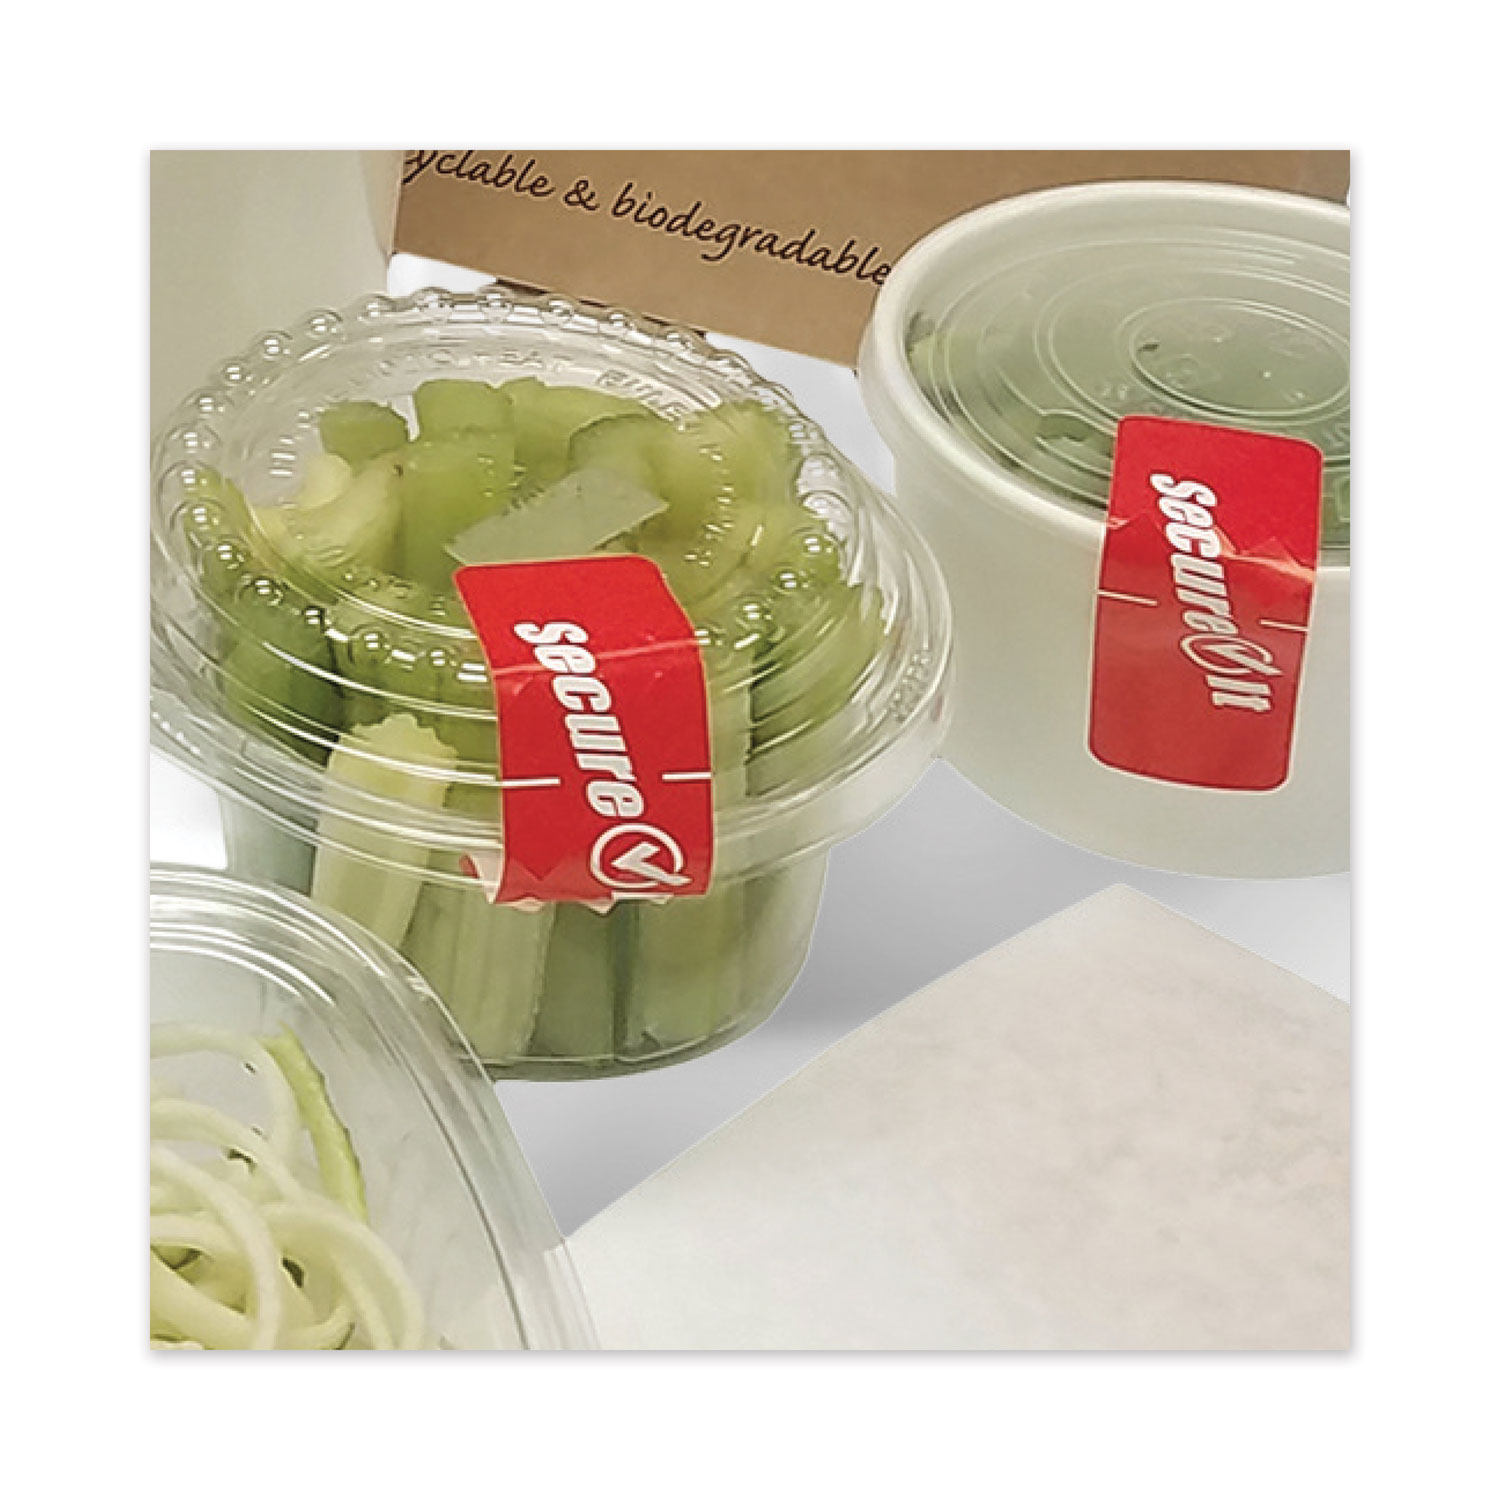 National Checking Company™ SecureIT Tamper Evident Food Container Seal, Secure It, 1 x 3, Red, 250/Roll, 2 Rolls/Pack